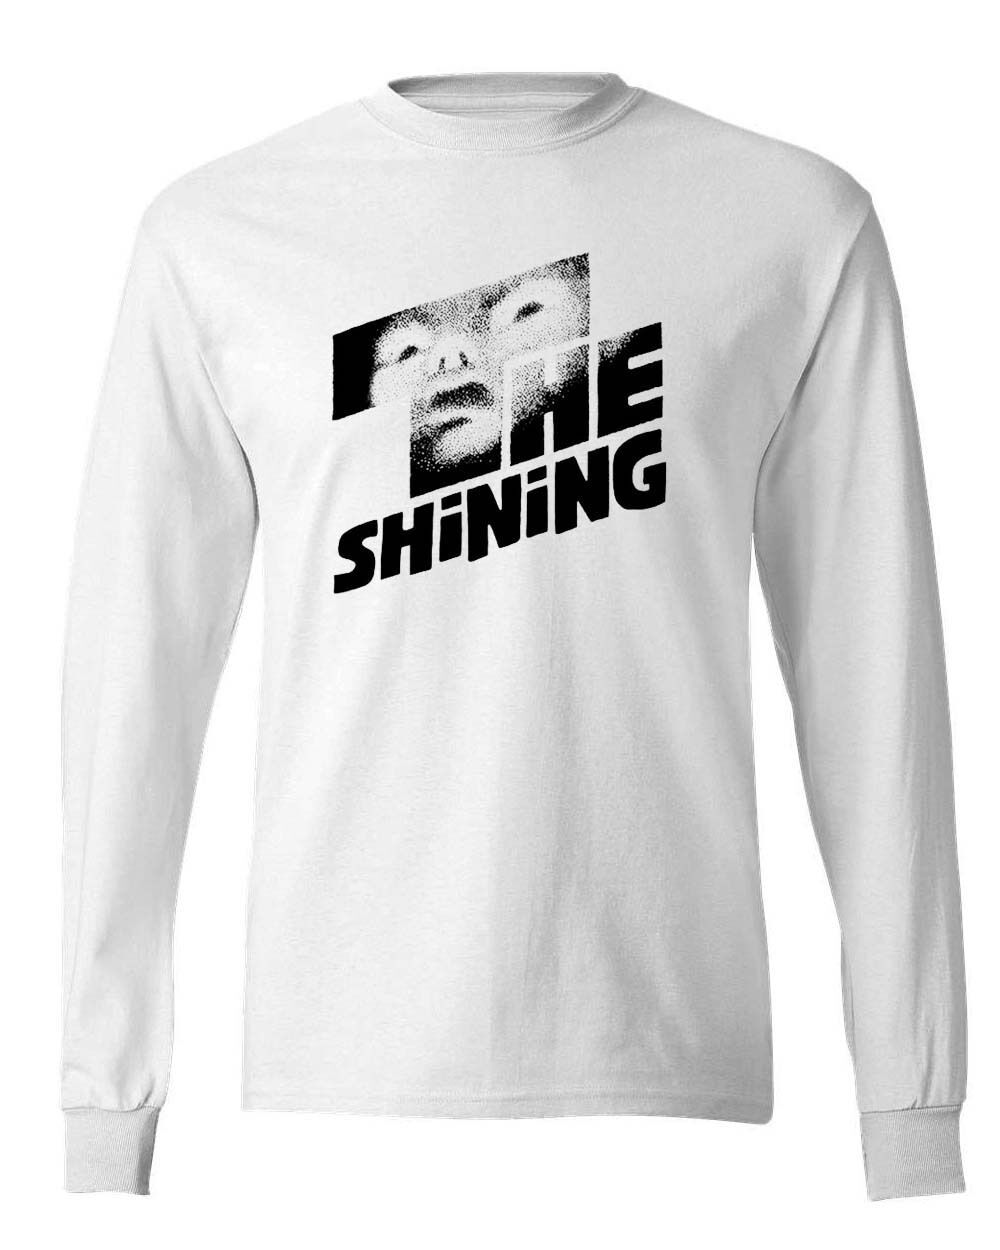 The Shining t-shirt retro horror Stephen King 80's 100% cotton Long Sleeve tee